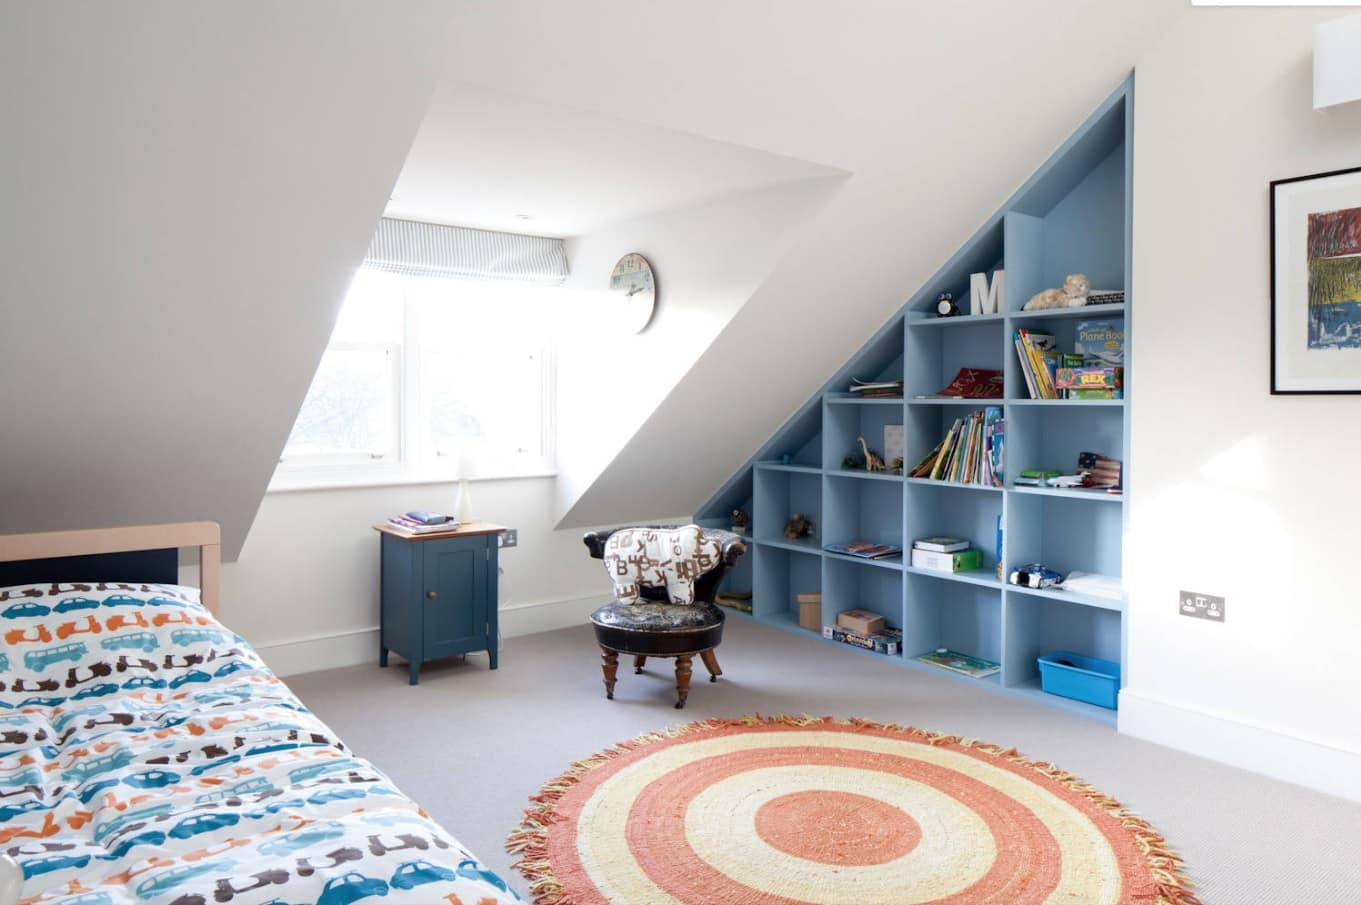 8 Best Loft Conversion Ideas for 2020. Gorgeous kids room with open storage in blue